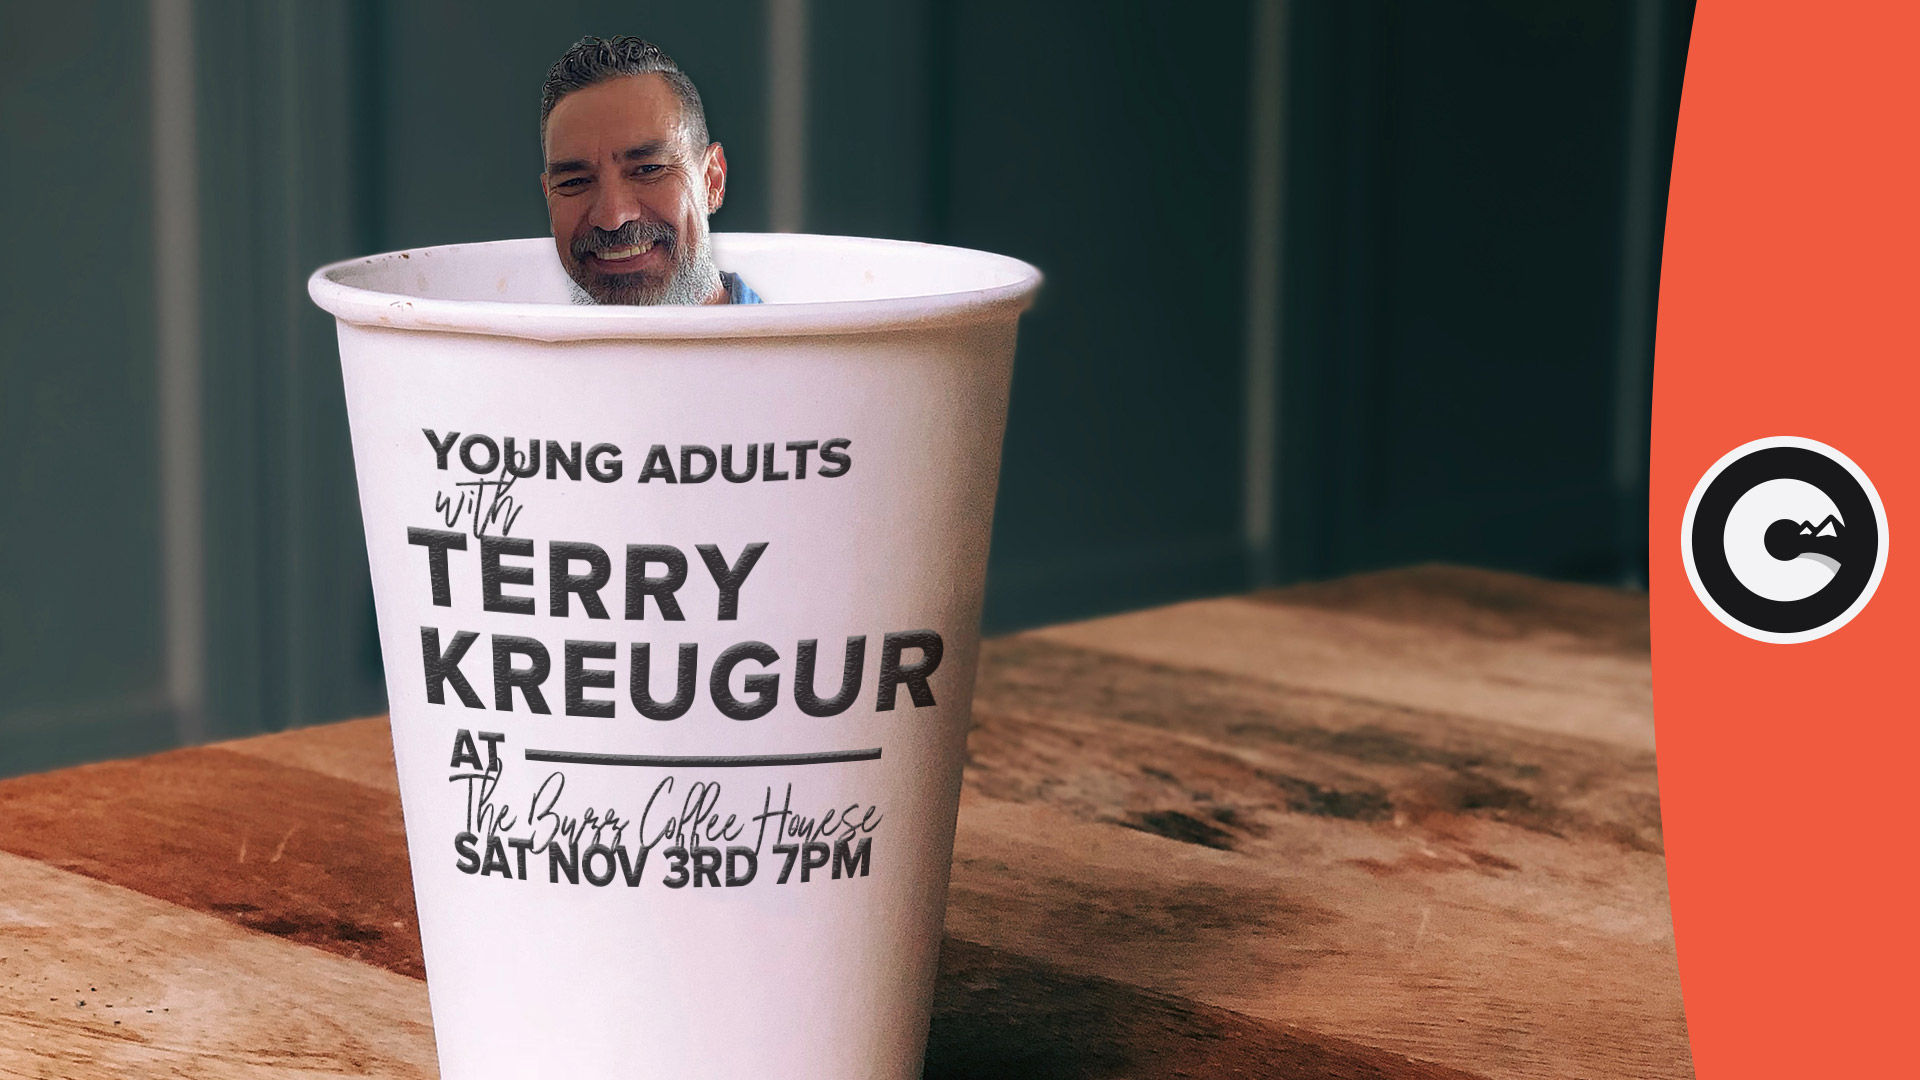 Young Adults Night with Terry Kreuger